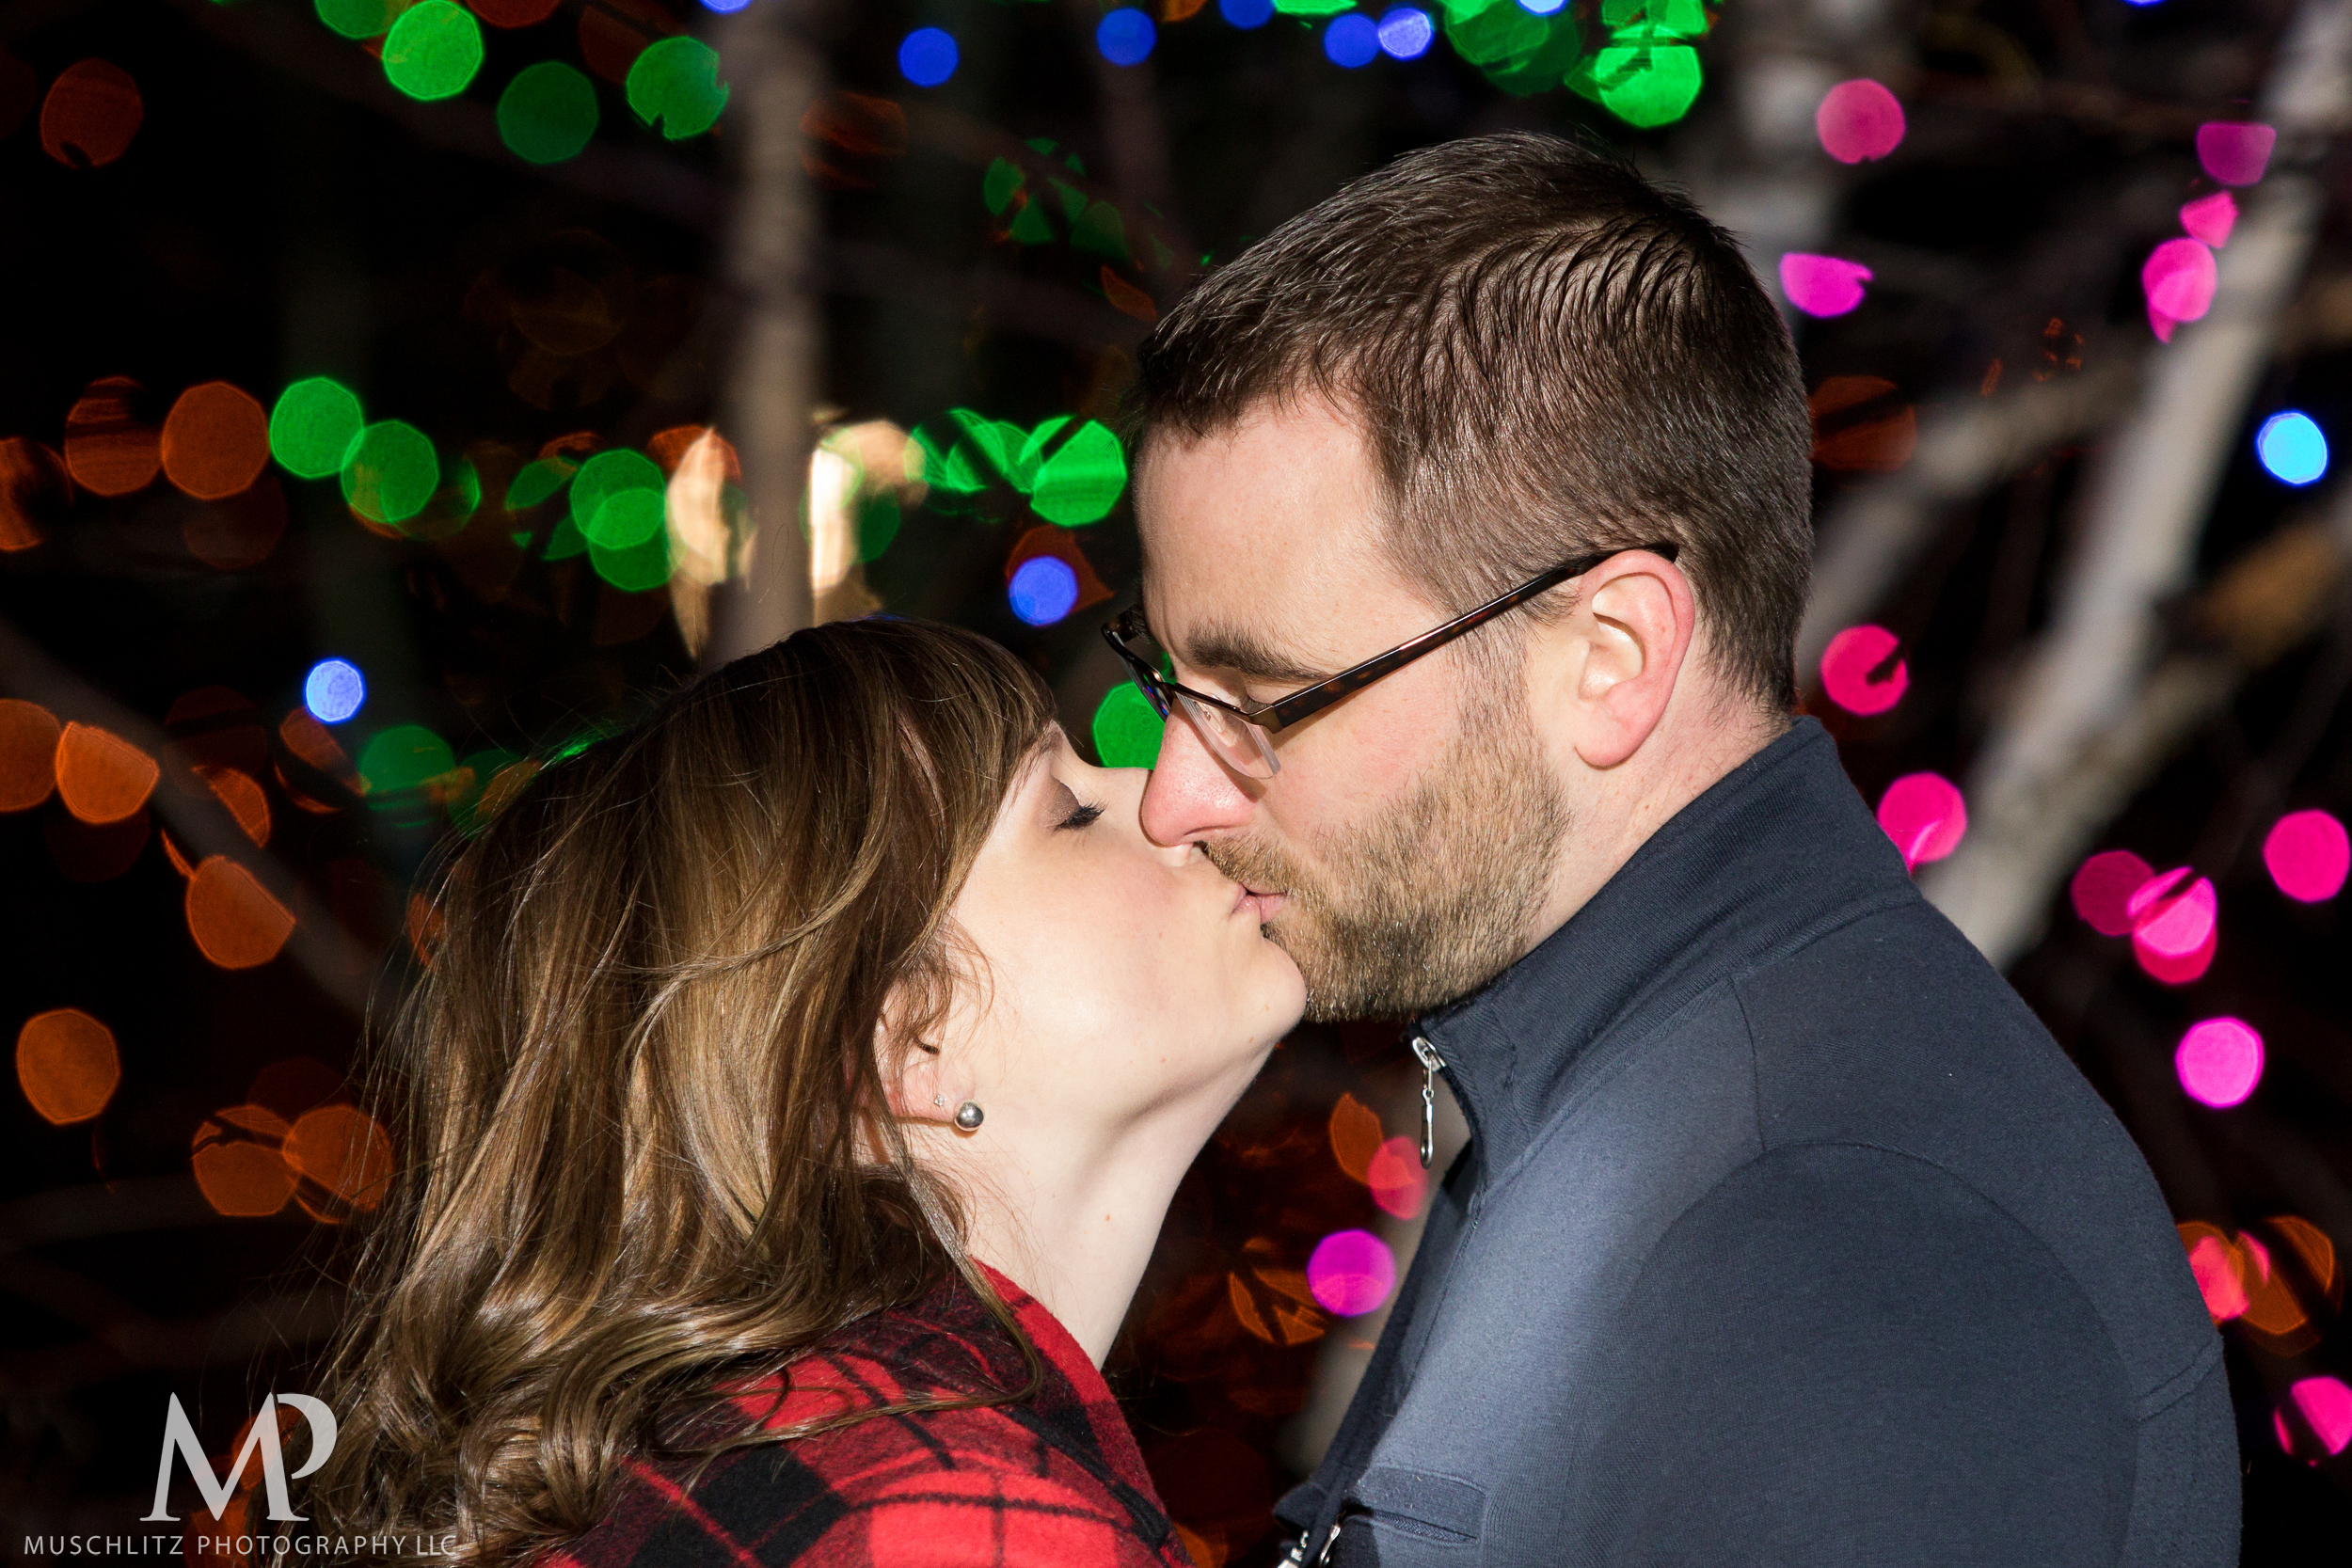 bicentennial-park-engagement-session-holiday-portraits-columbus-ohio-065.JPG